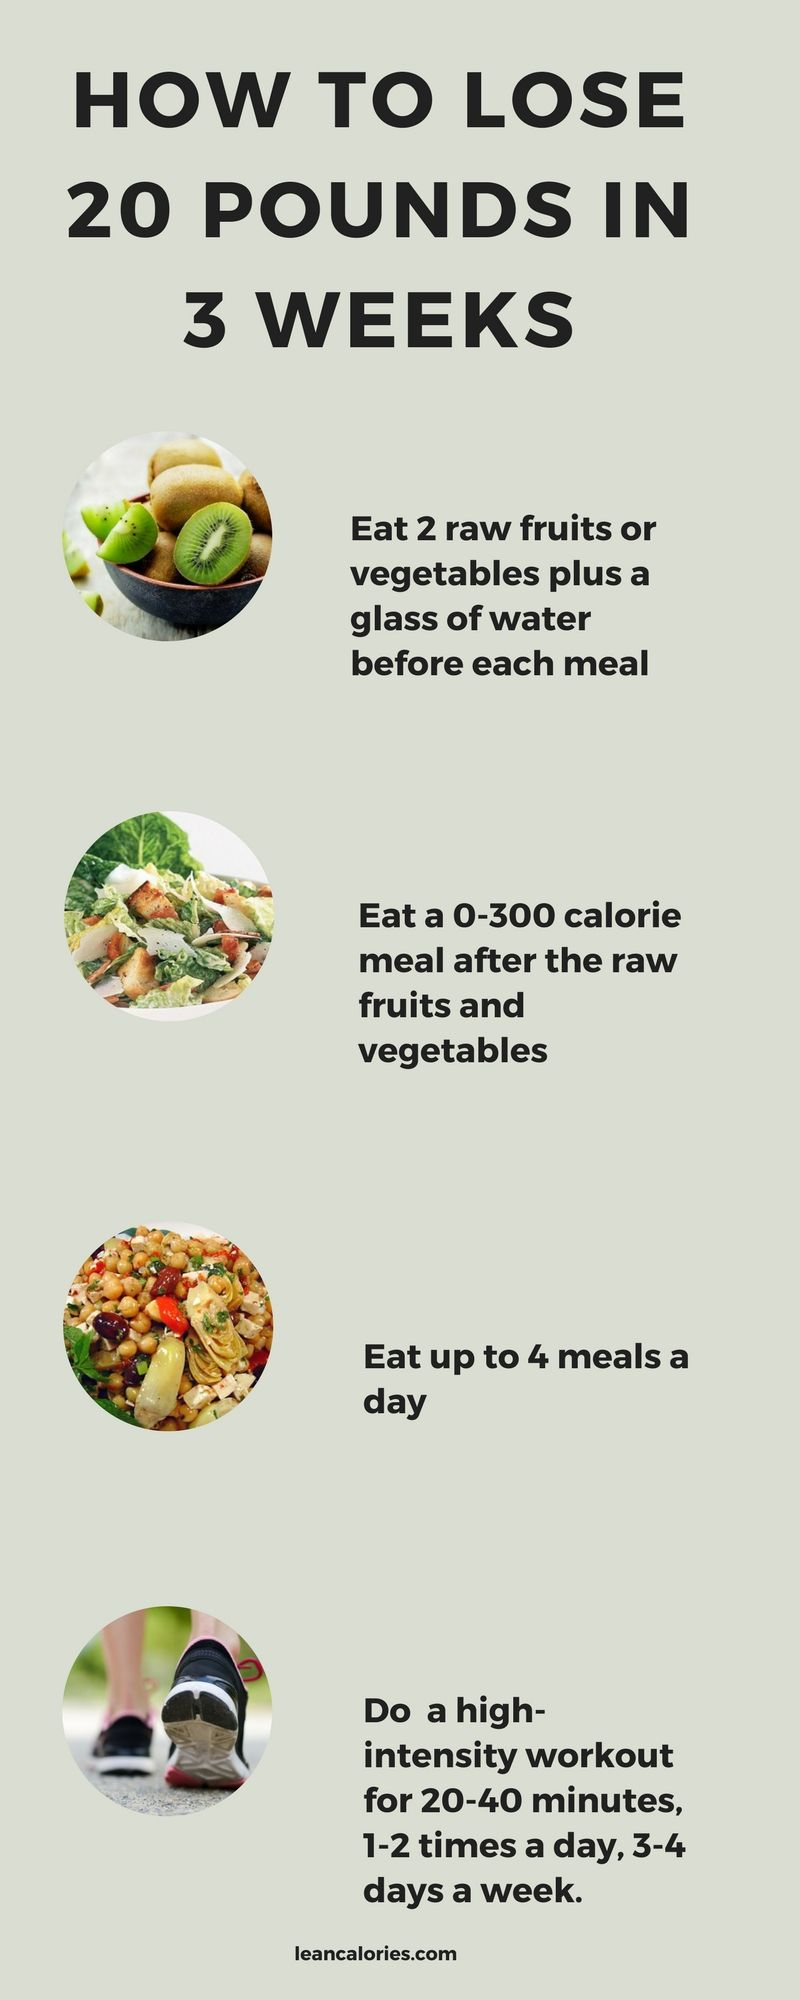 How to remove extra pounds, reducing appetite